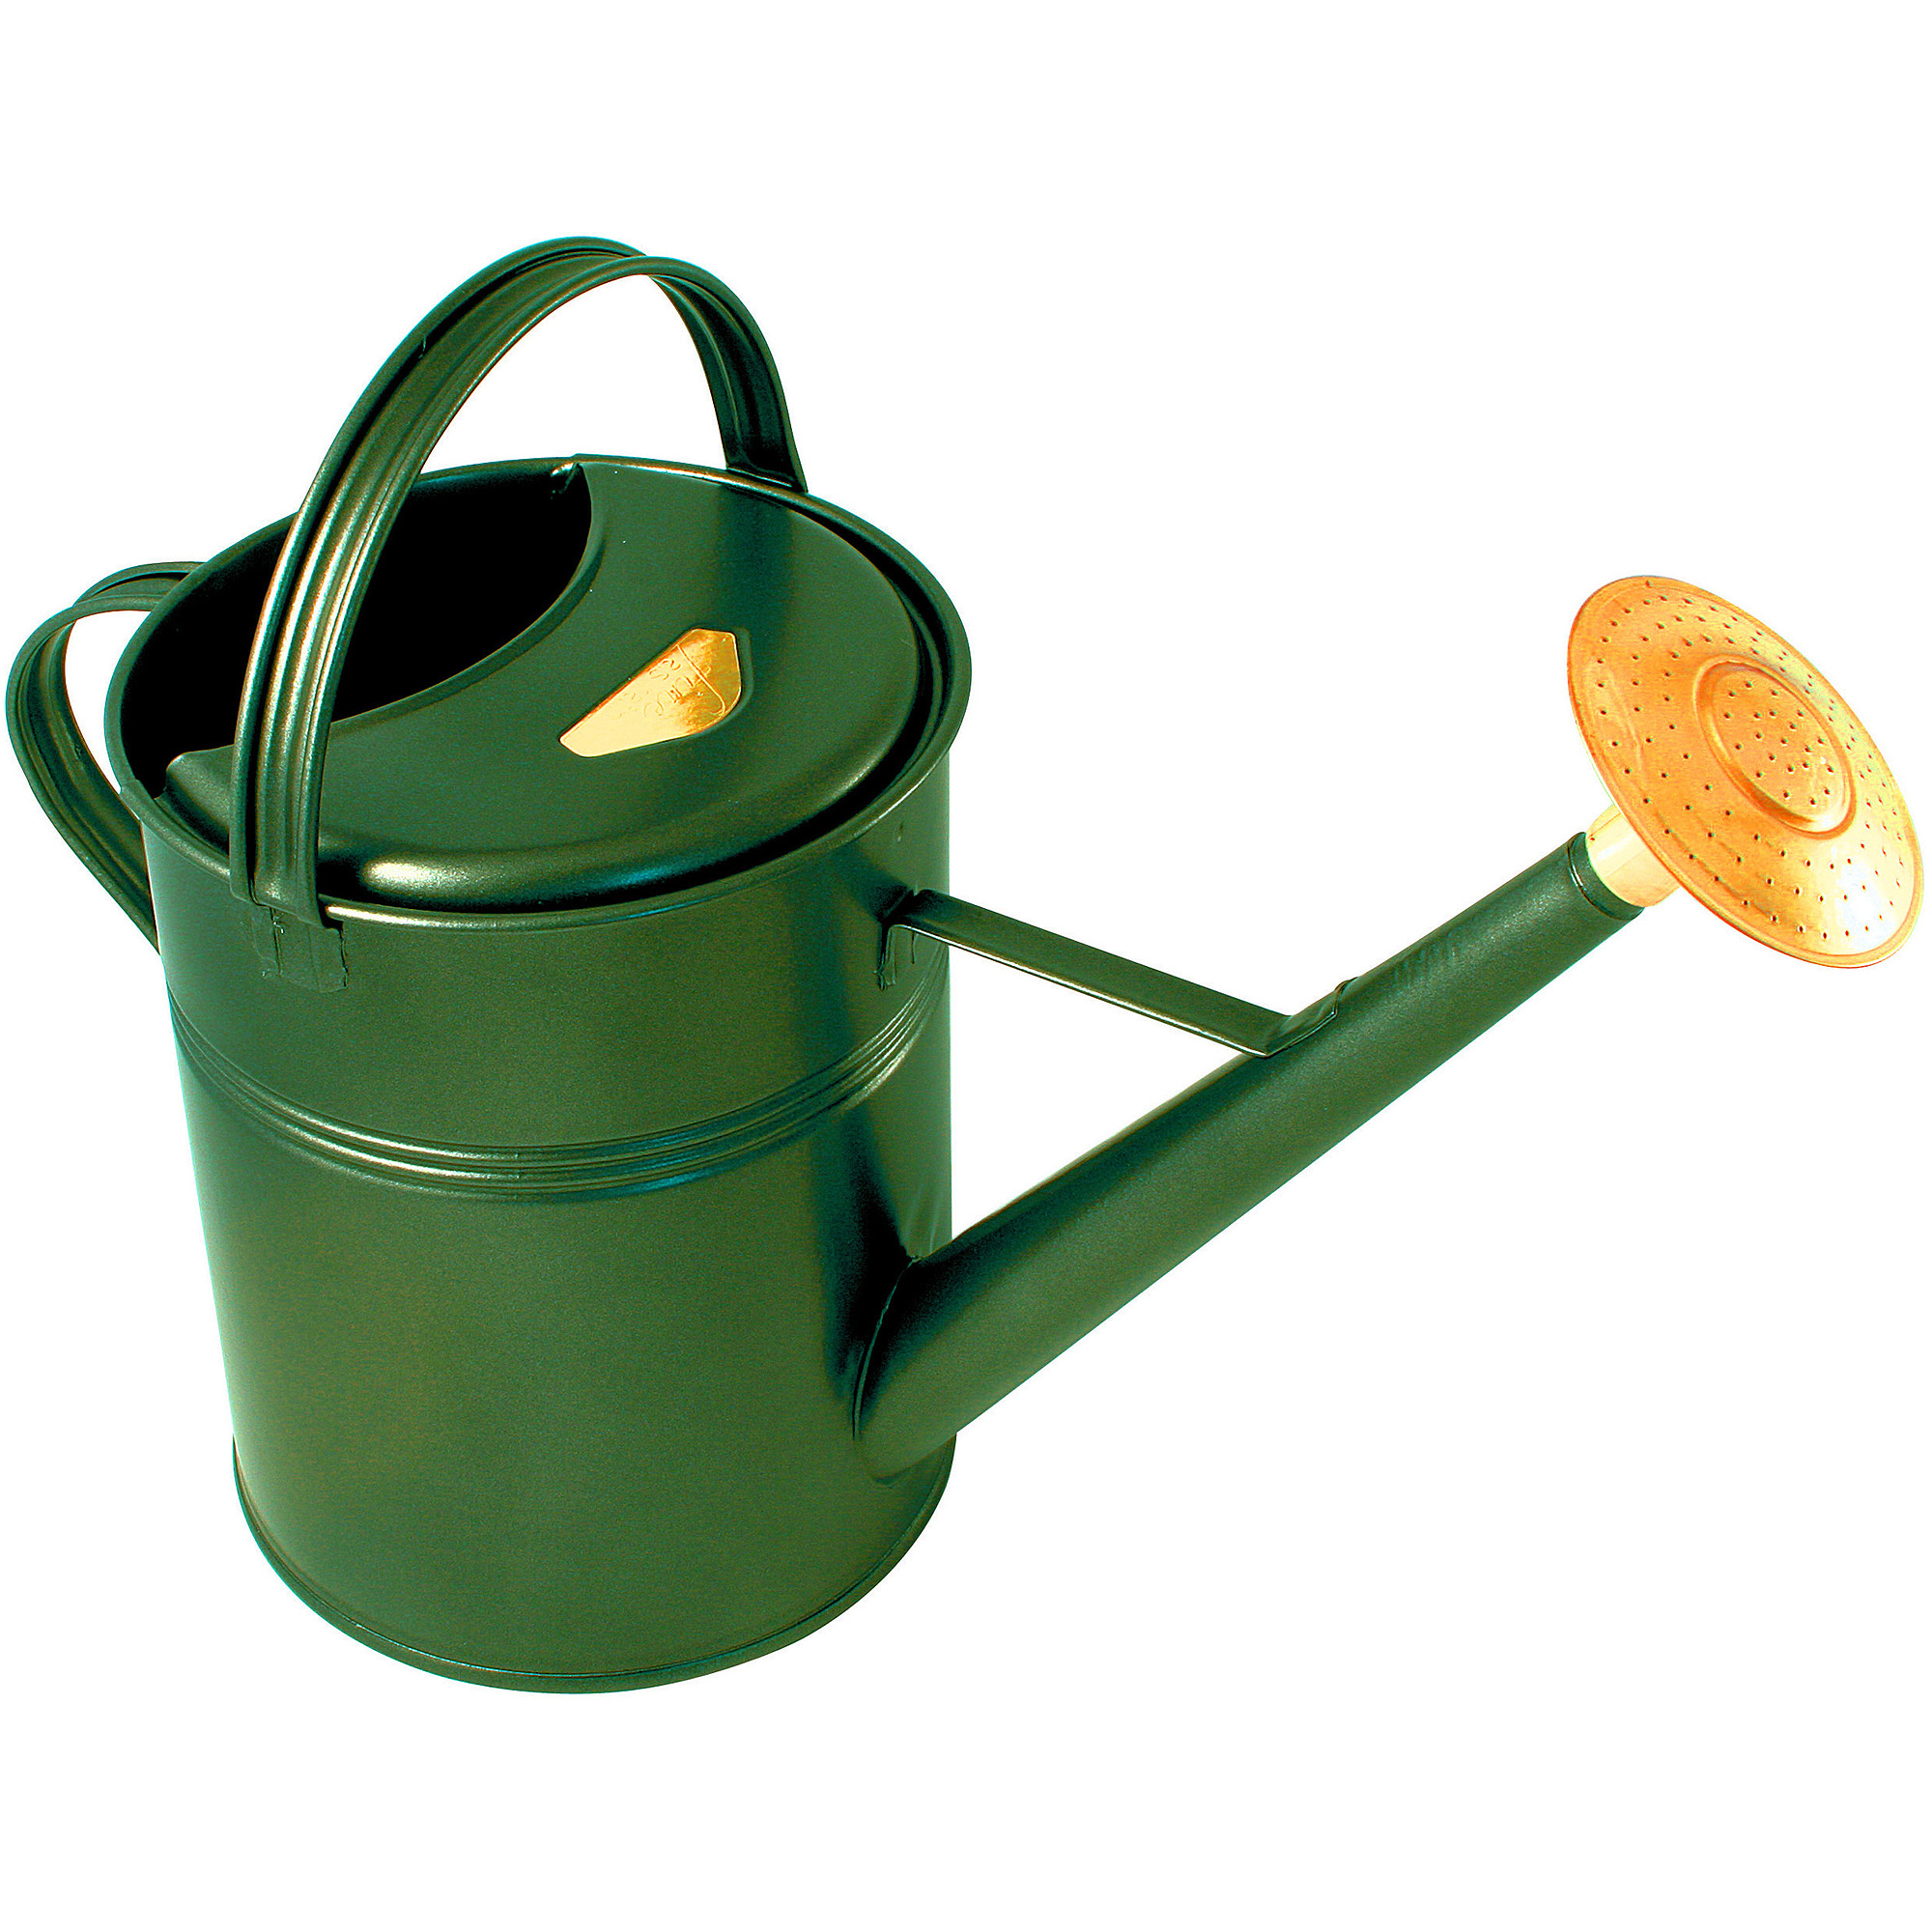 Haws Traditional 2.3 gal Watering Can, Green V143G